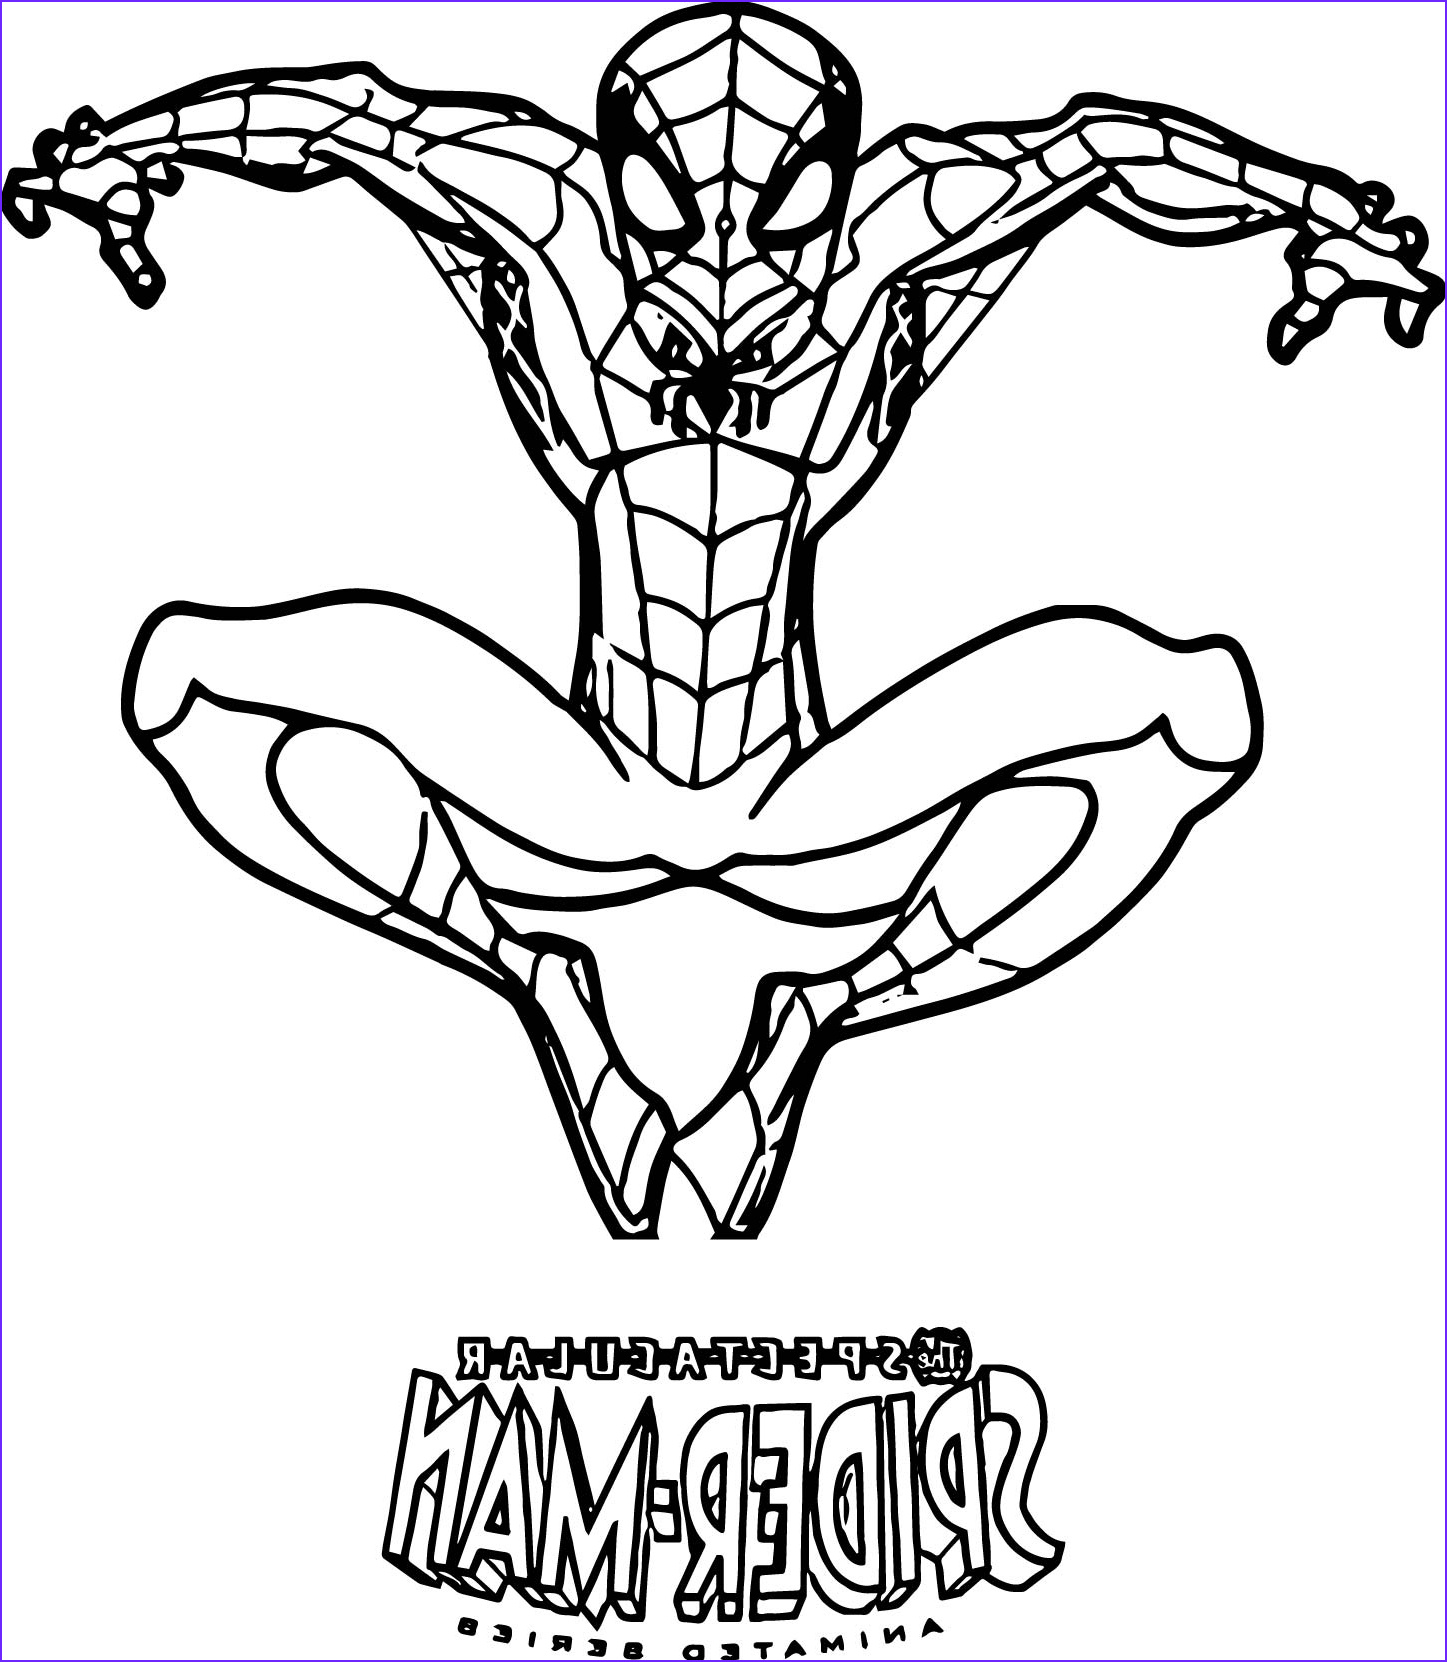 Coloring Page Of Spiderman Cool Images Spiderman Black Suit Coloring Pages at Getdrawings